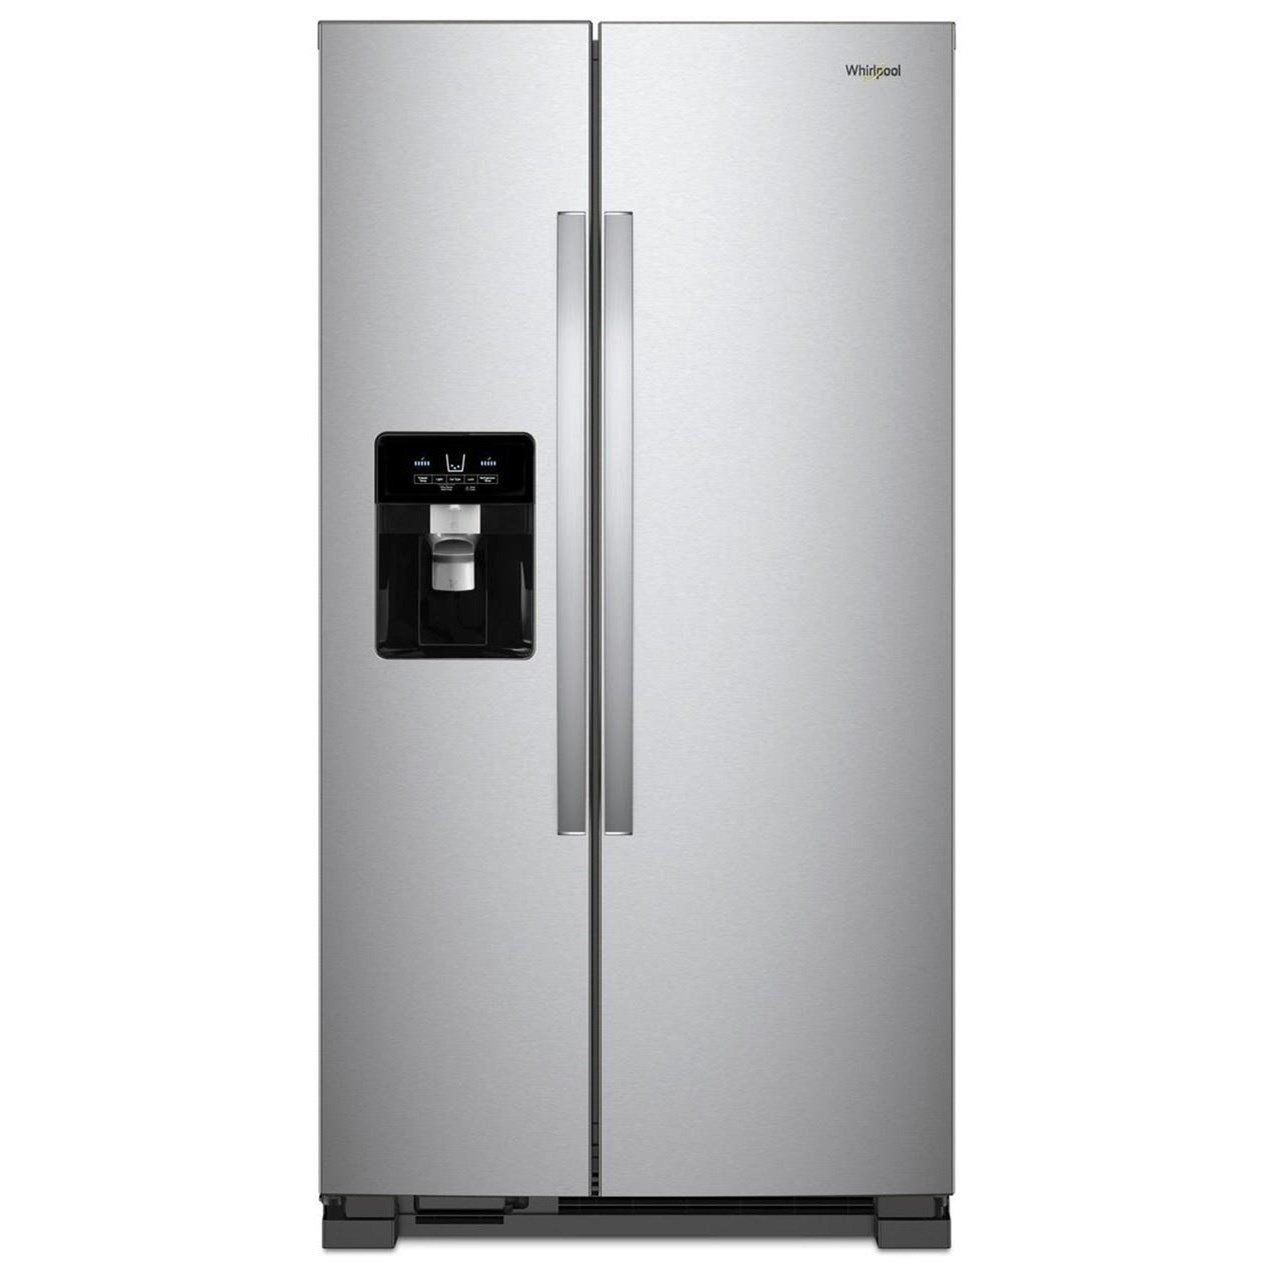 Side by Side Refrigerators 25 Cu. Ft. Side-by-Side Refrigerator by Whirlpool at Furniture Fair - North Carolina